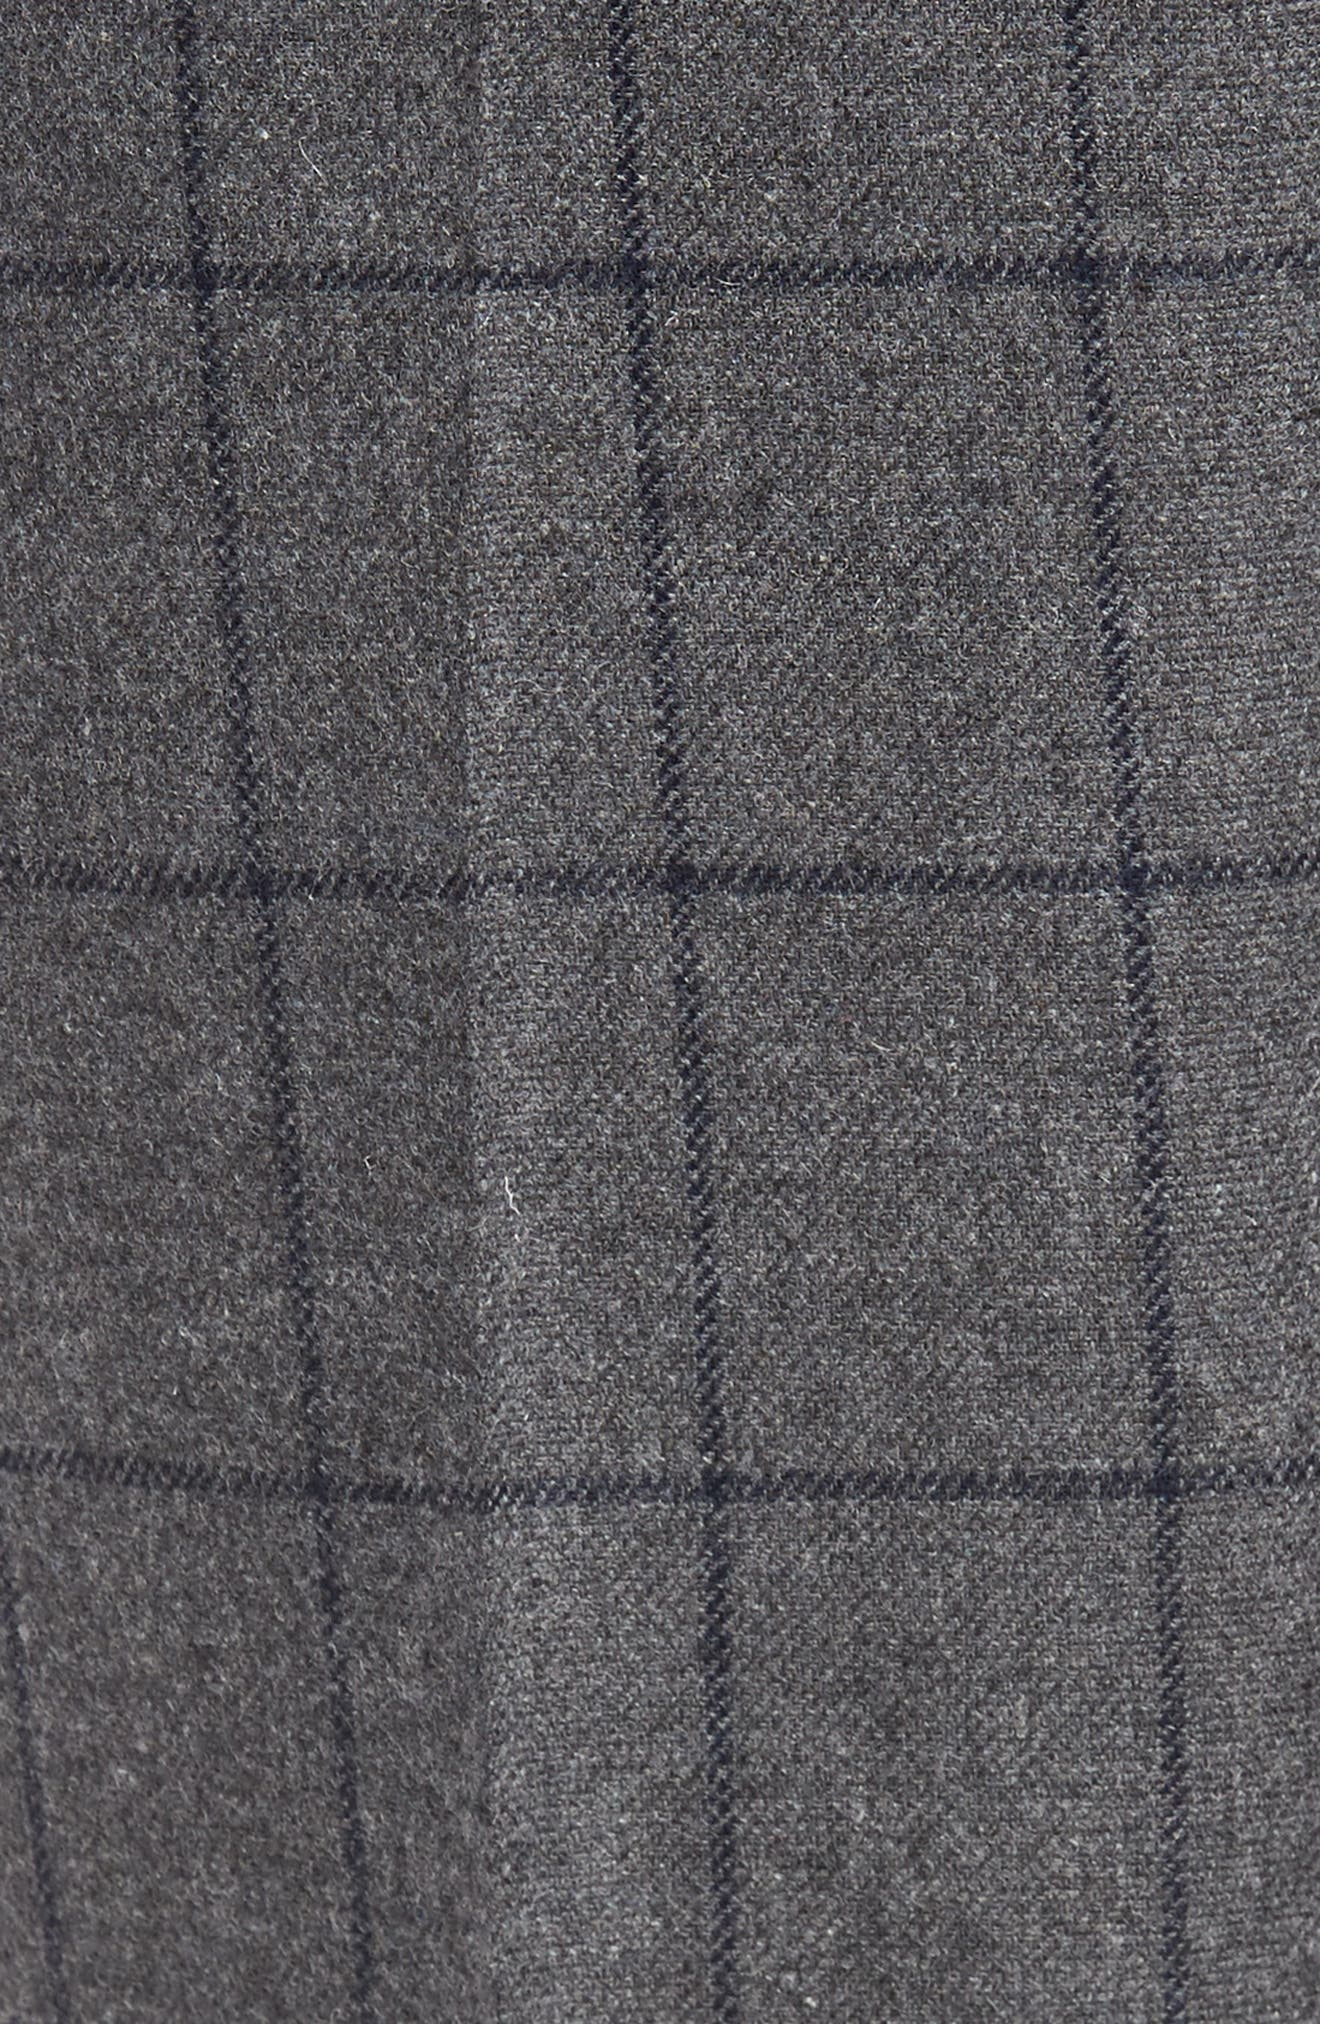 Flat Front Windowpane Wool Blend Trousers,                             Alternate thumbnail 2, color,                             030